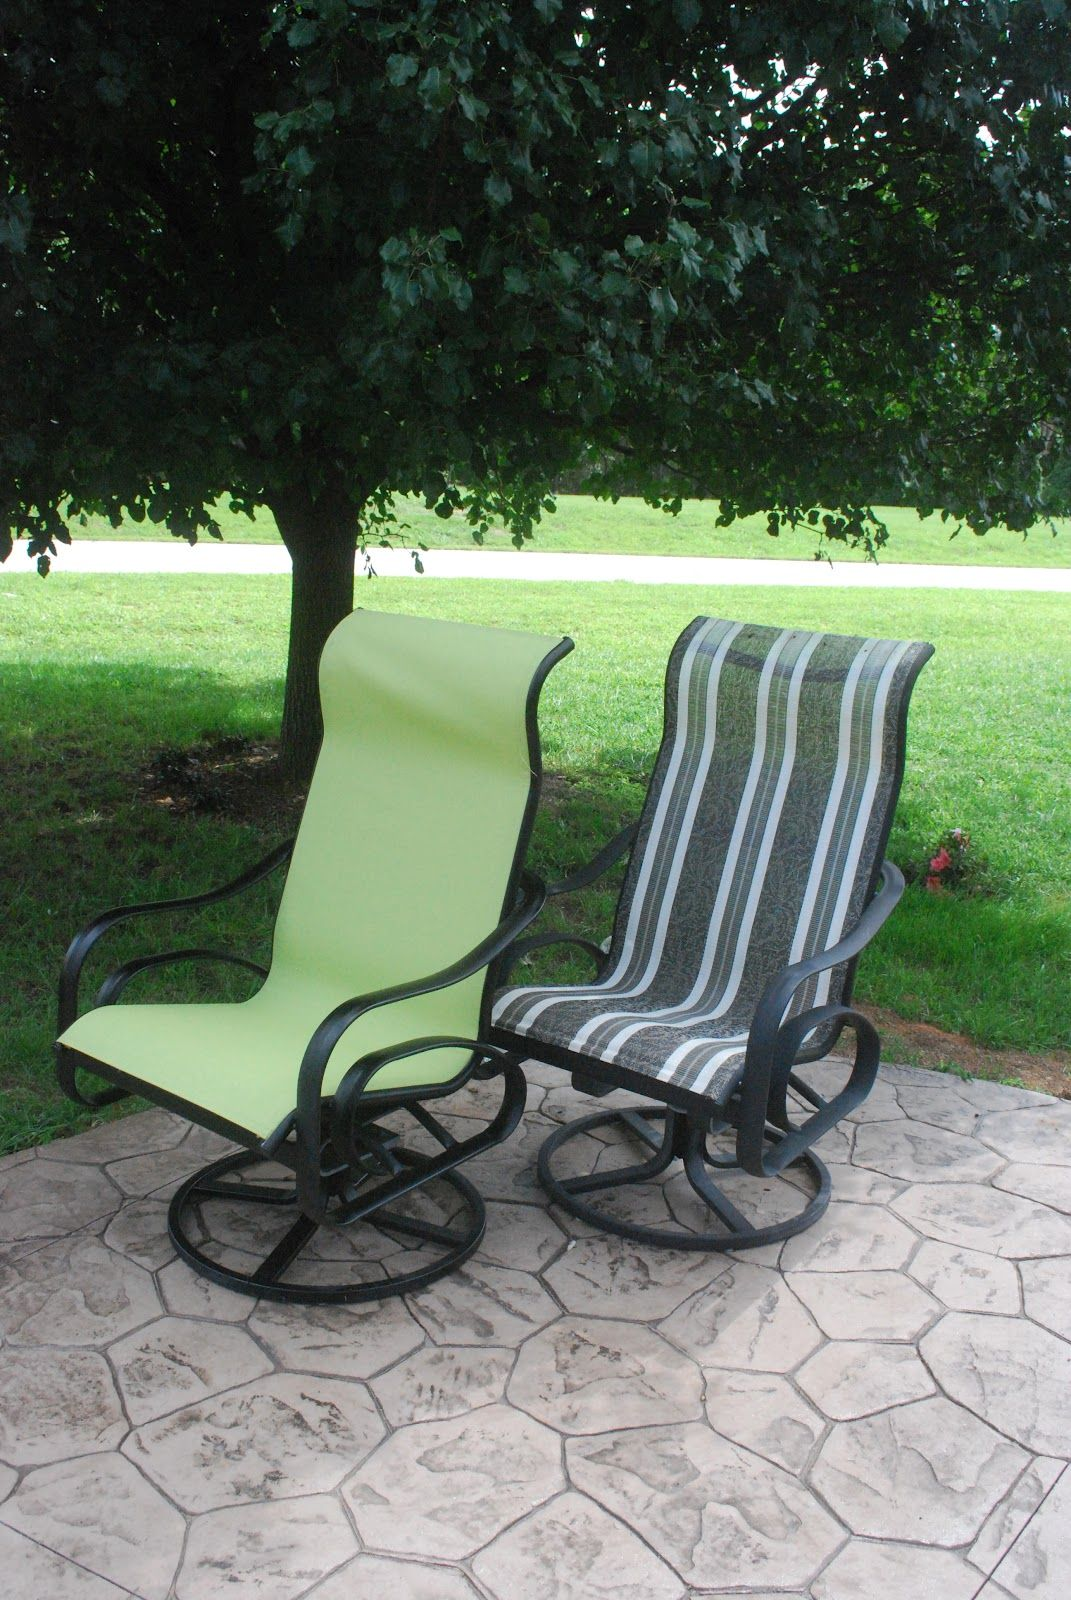 Recover Sling Patio Chairs Knoll Brno Chair I Recovered Back That Were Given To Me Easy Got Phifertex Plus Vinyl Mesh Fabric From Sail Rite Com About 16